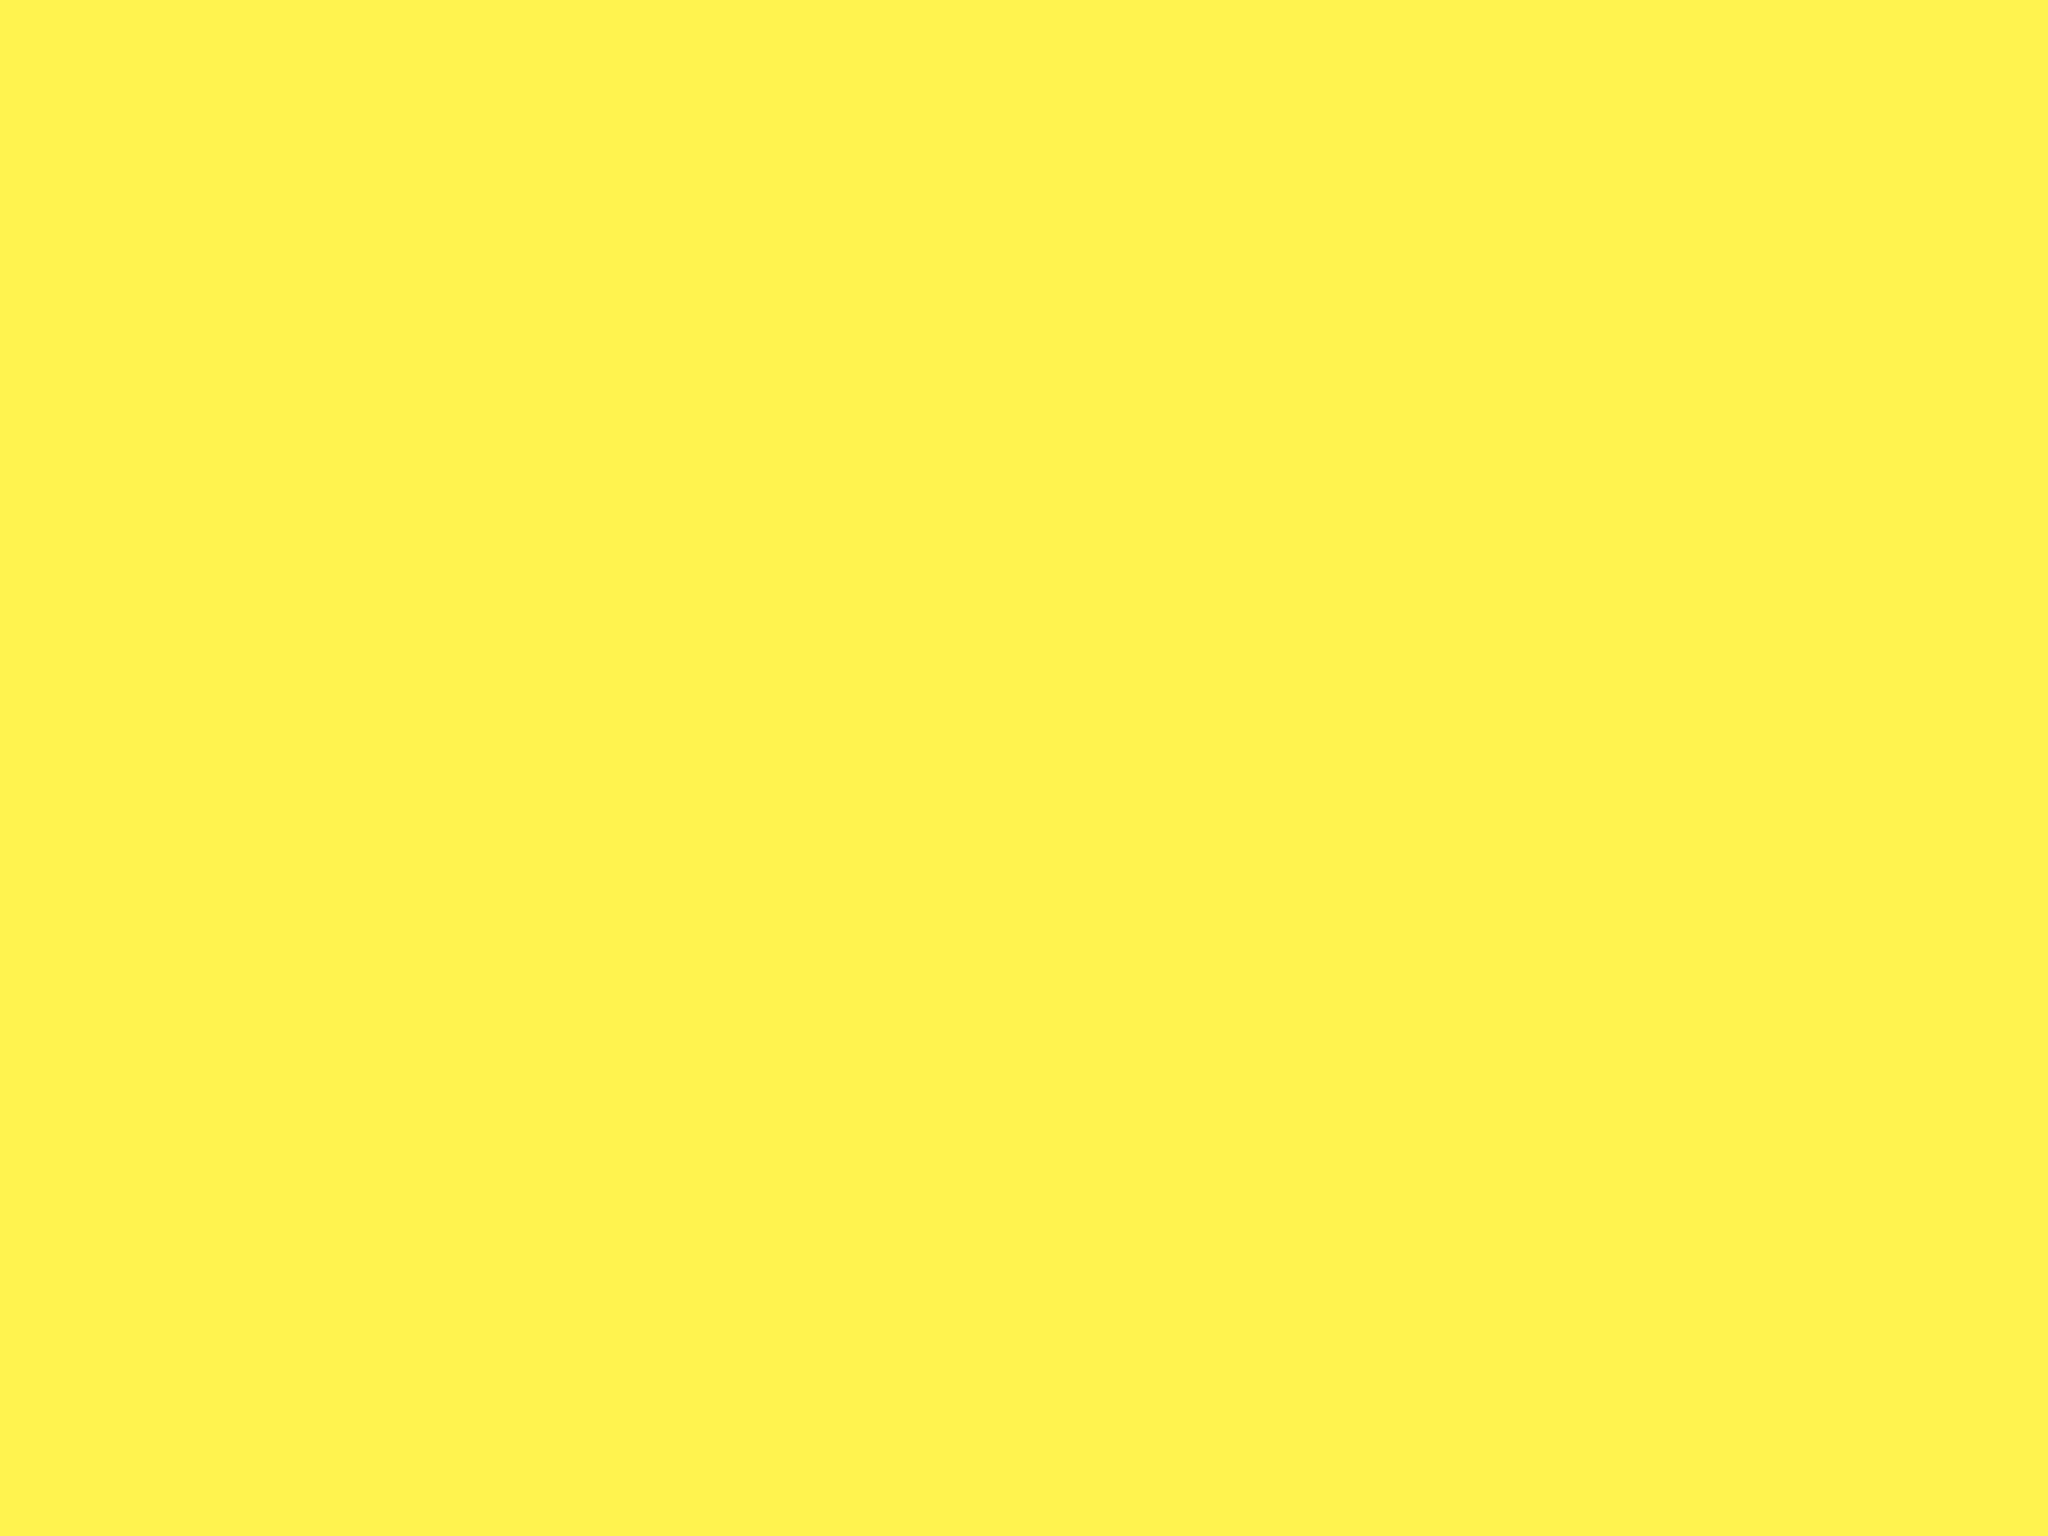 2048x1536 Lemon Yellow Solid Color Background